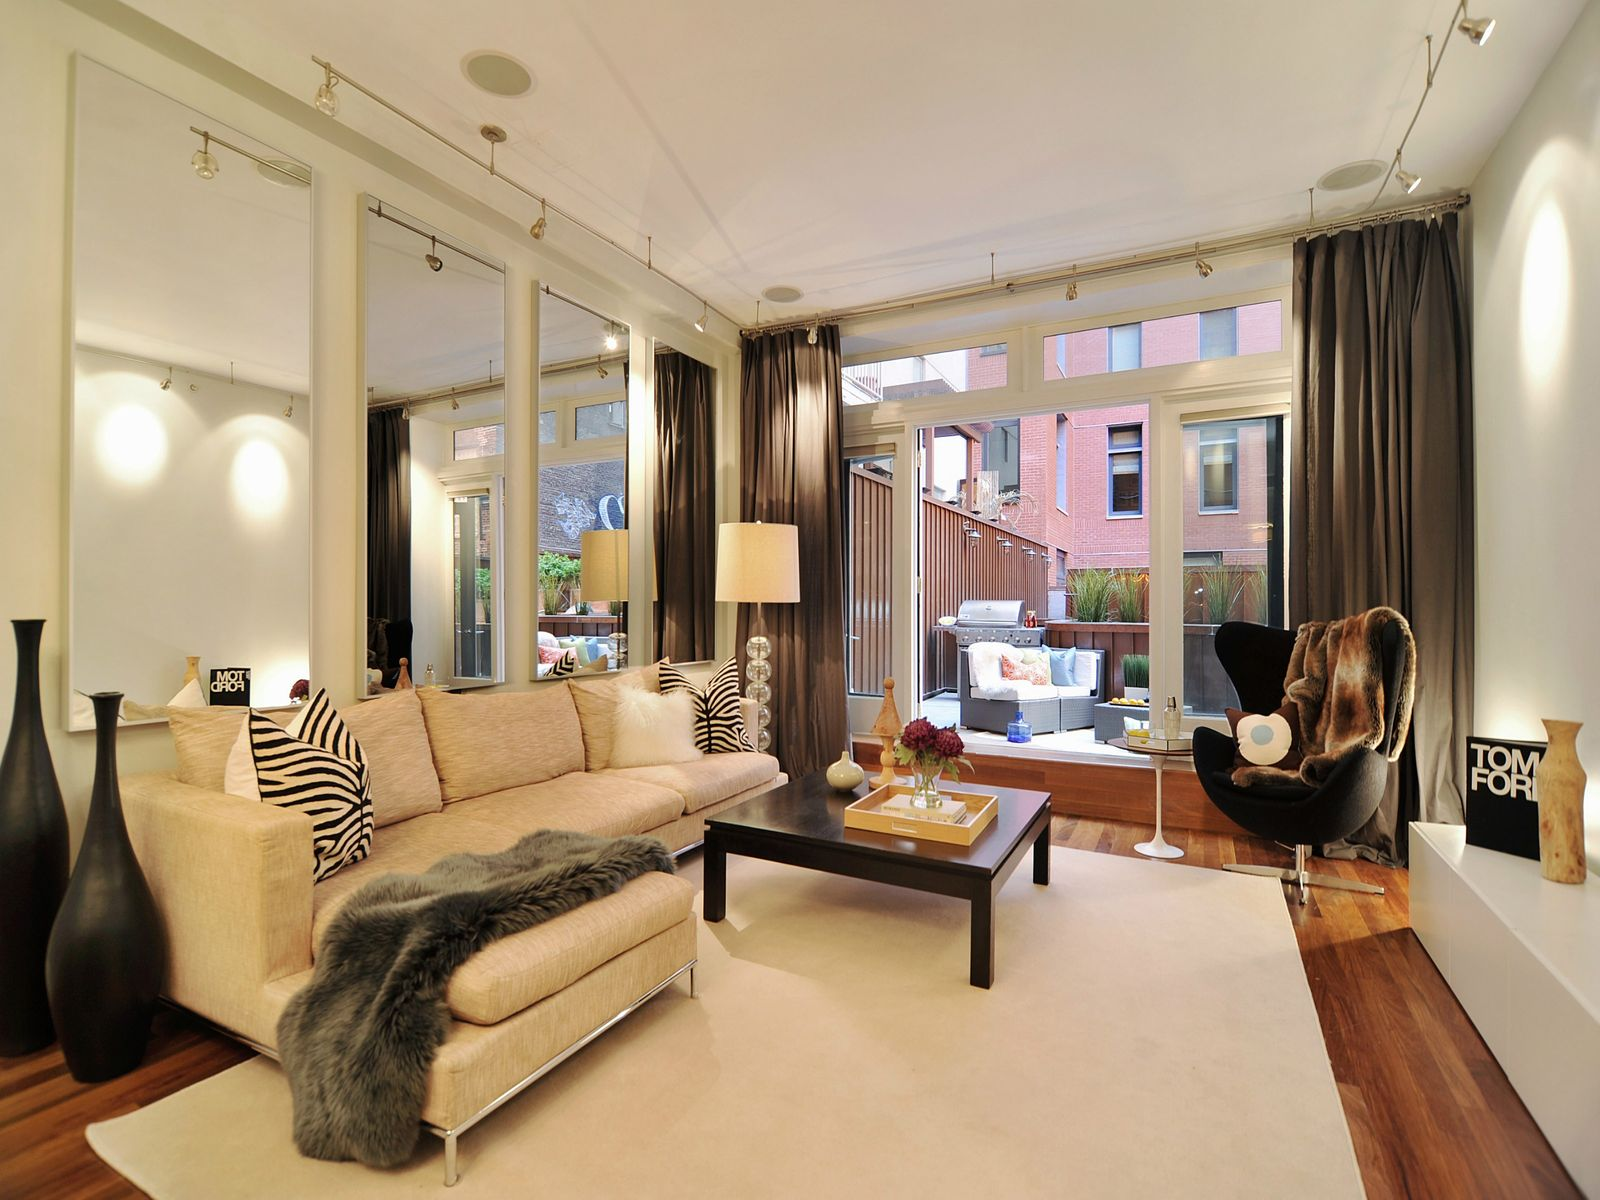 Indoor/Outdoor Living In Tribeca, New York NY Condominium - New York City Real Estate